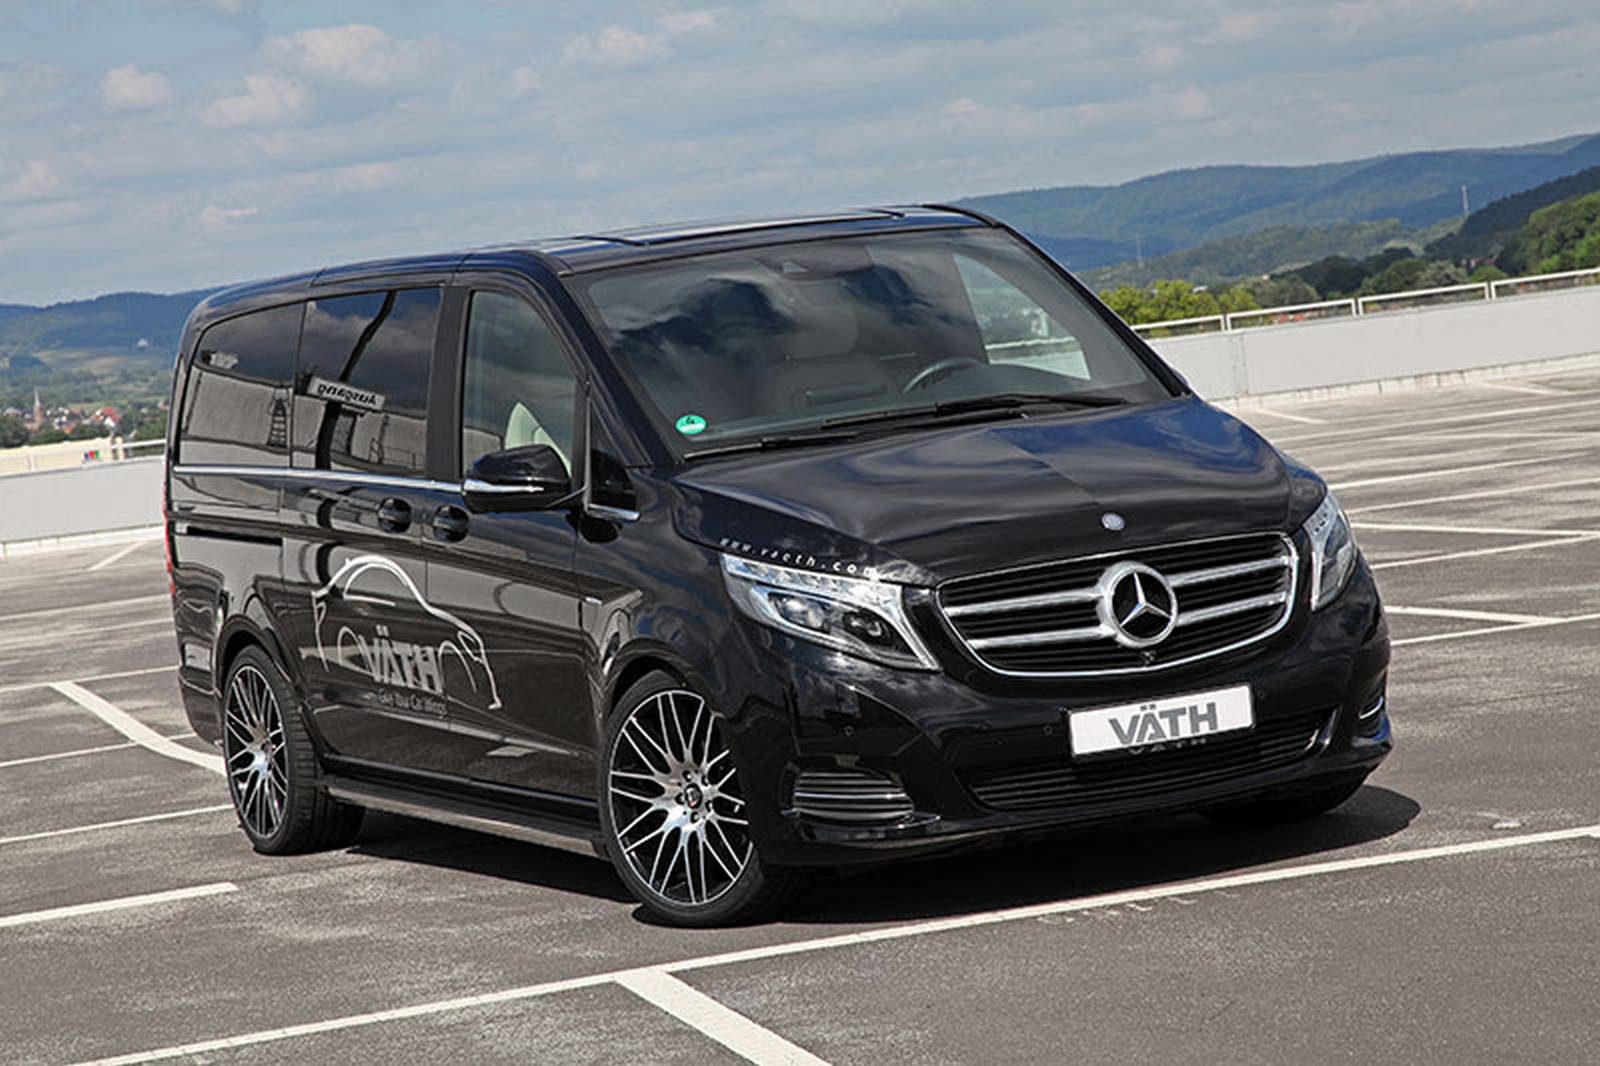 official vath mercedes benz v class gtspirit. Black Bedroom Furniture Sets. Home Design Ideas